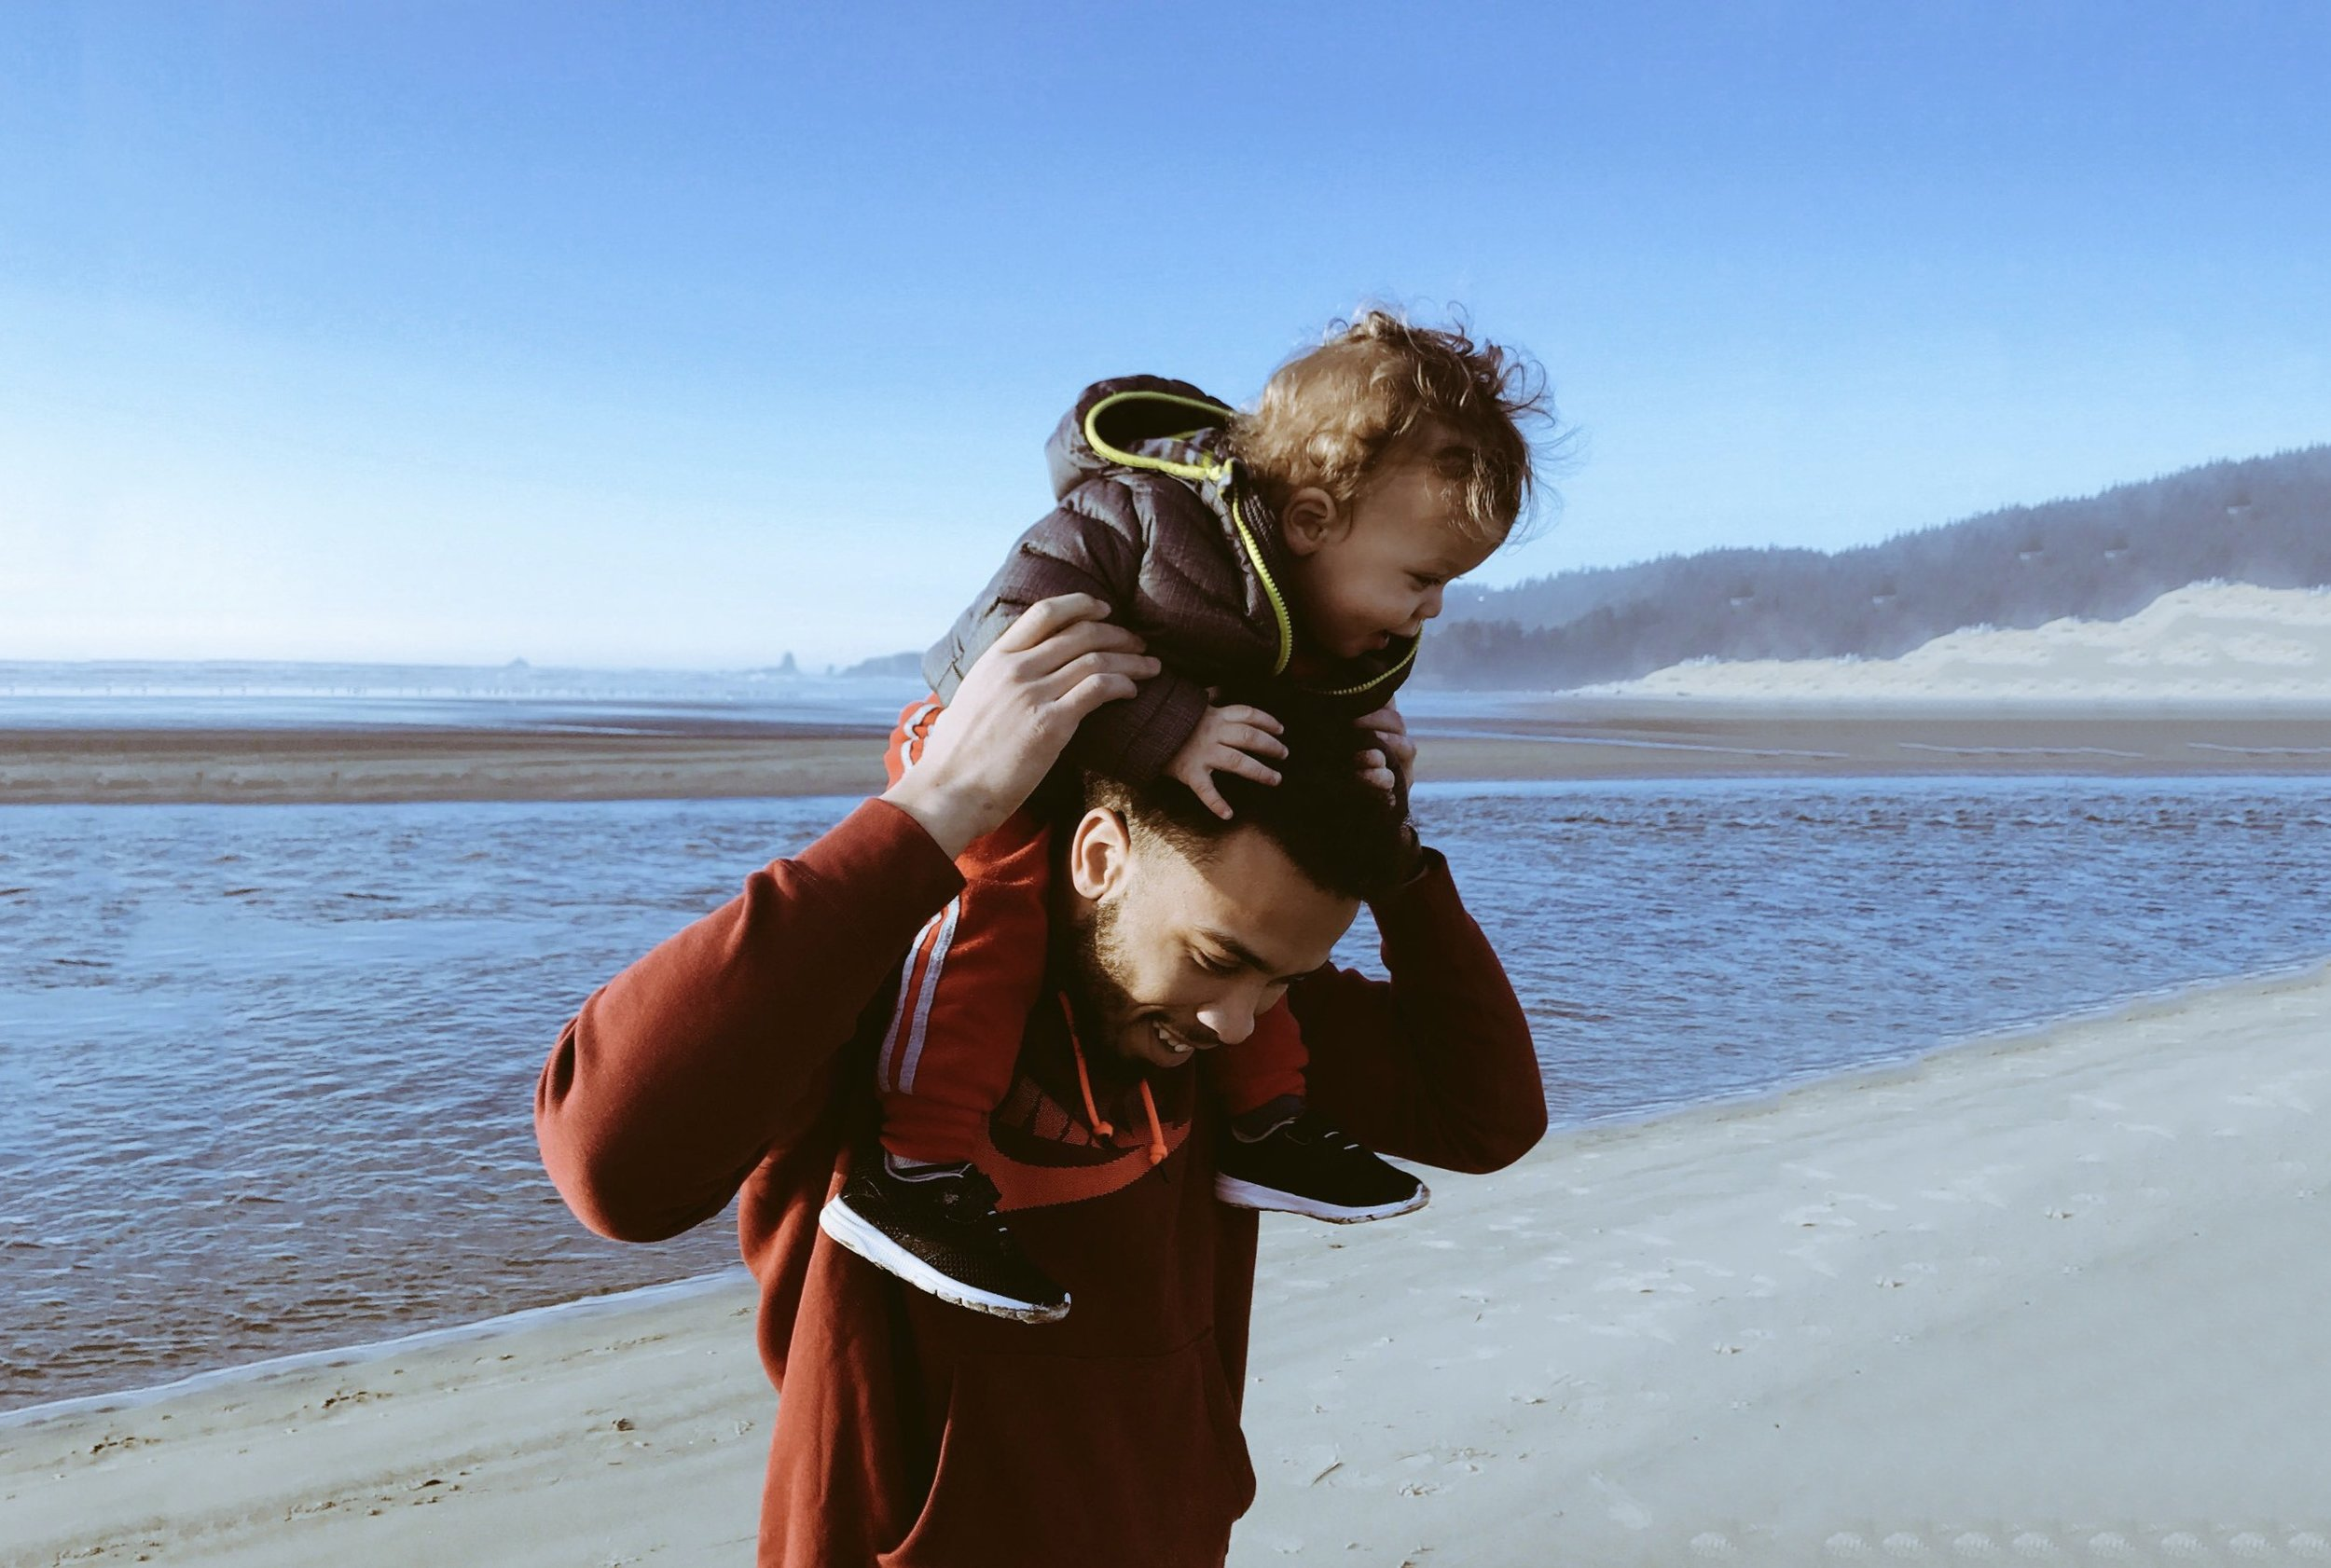 father with son on shoulders at beach.jpeg